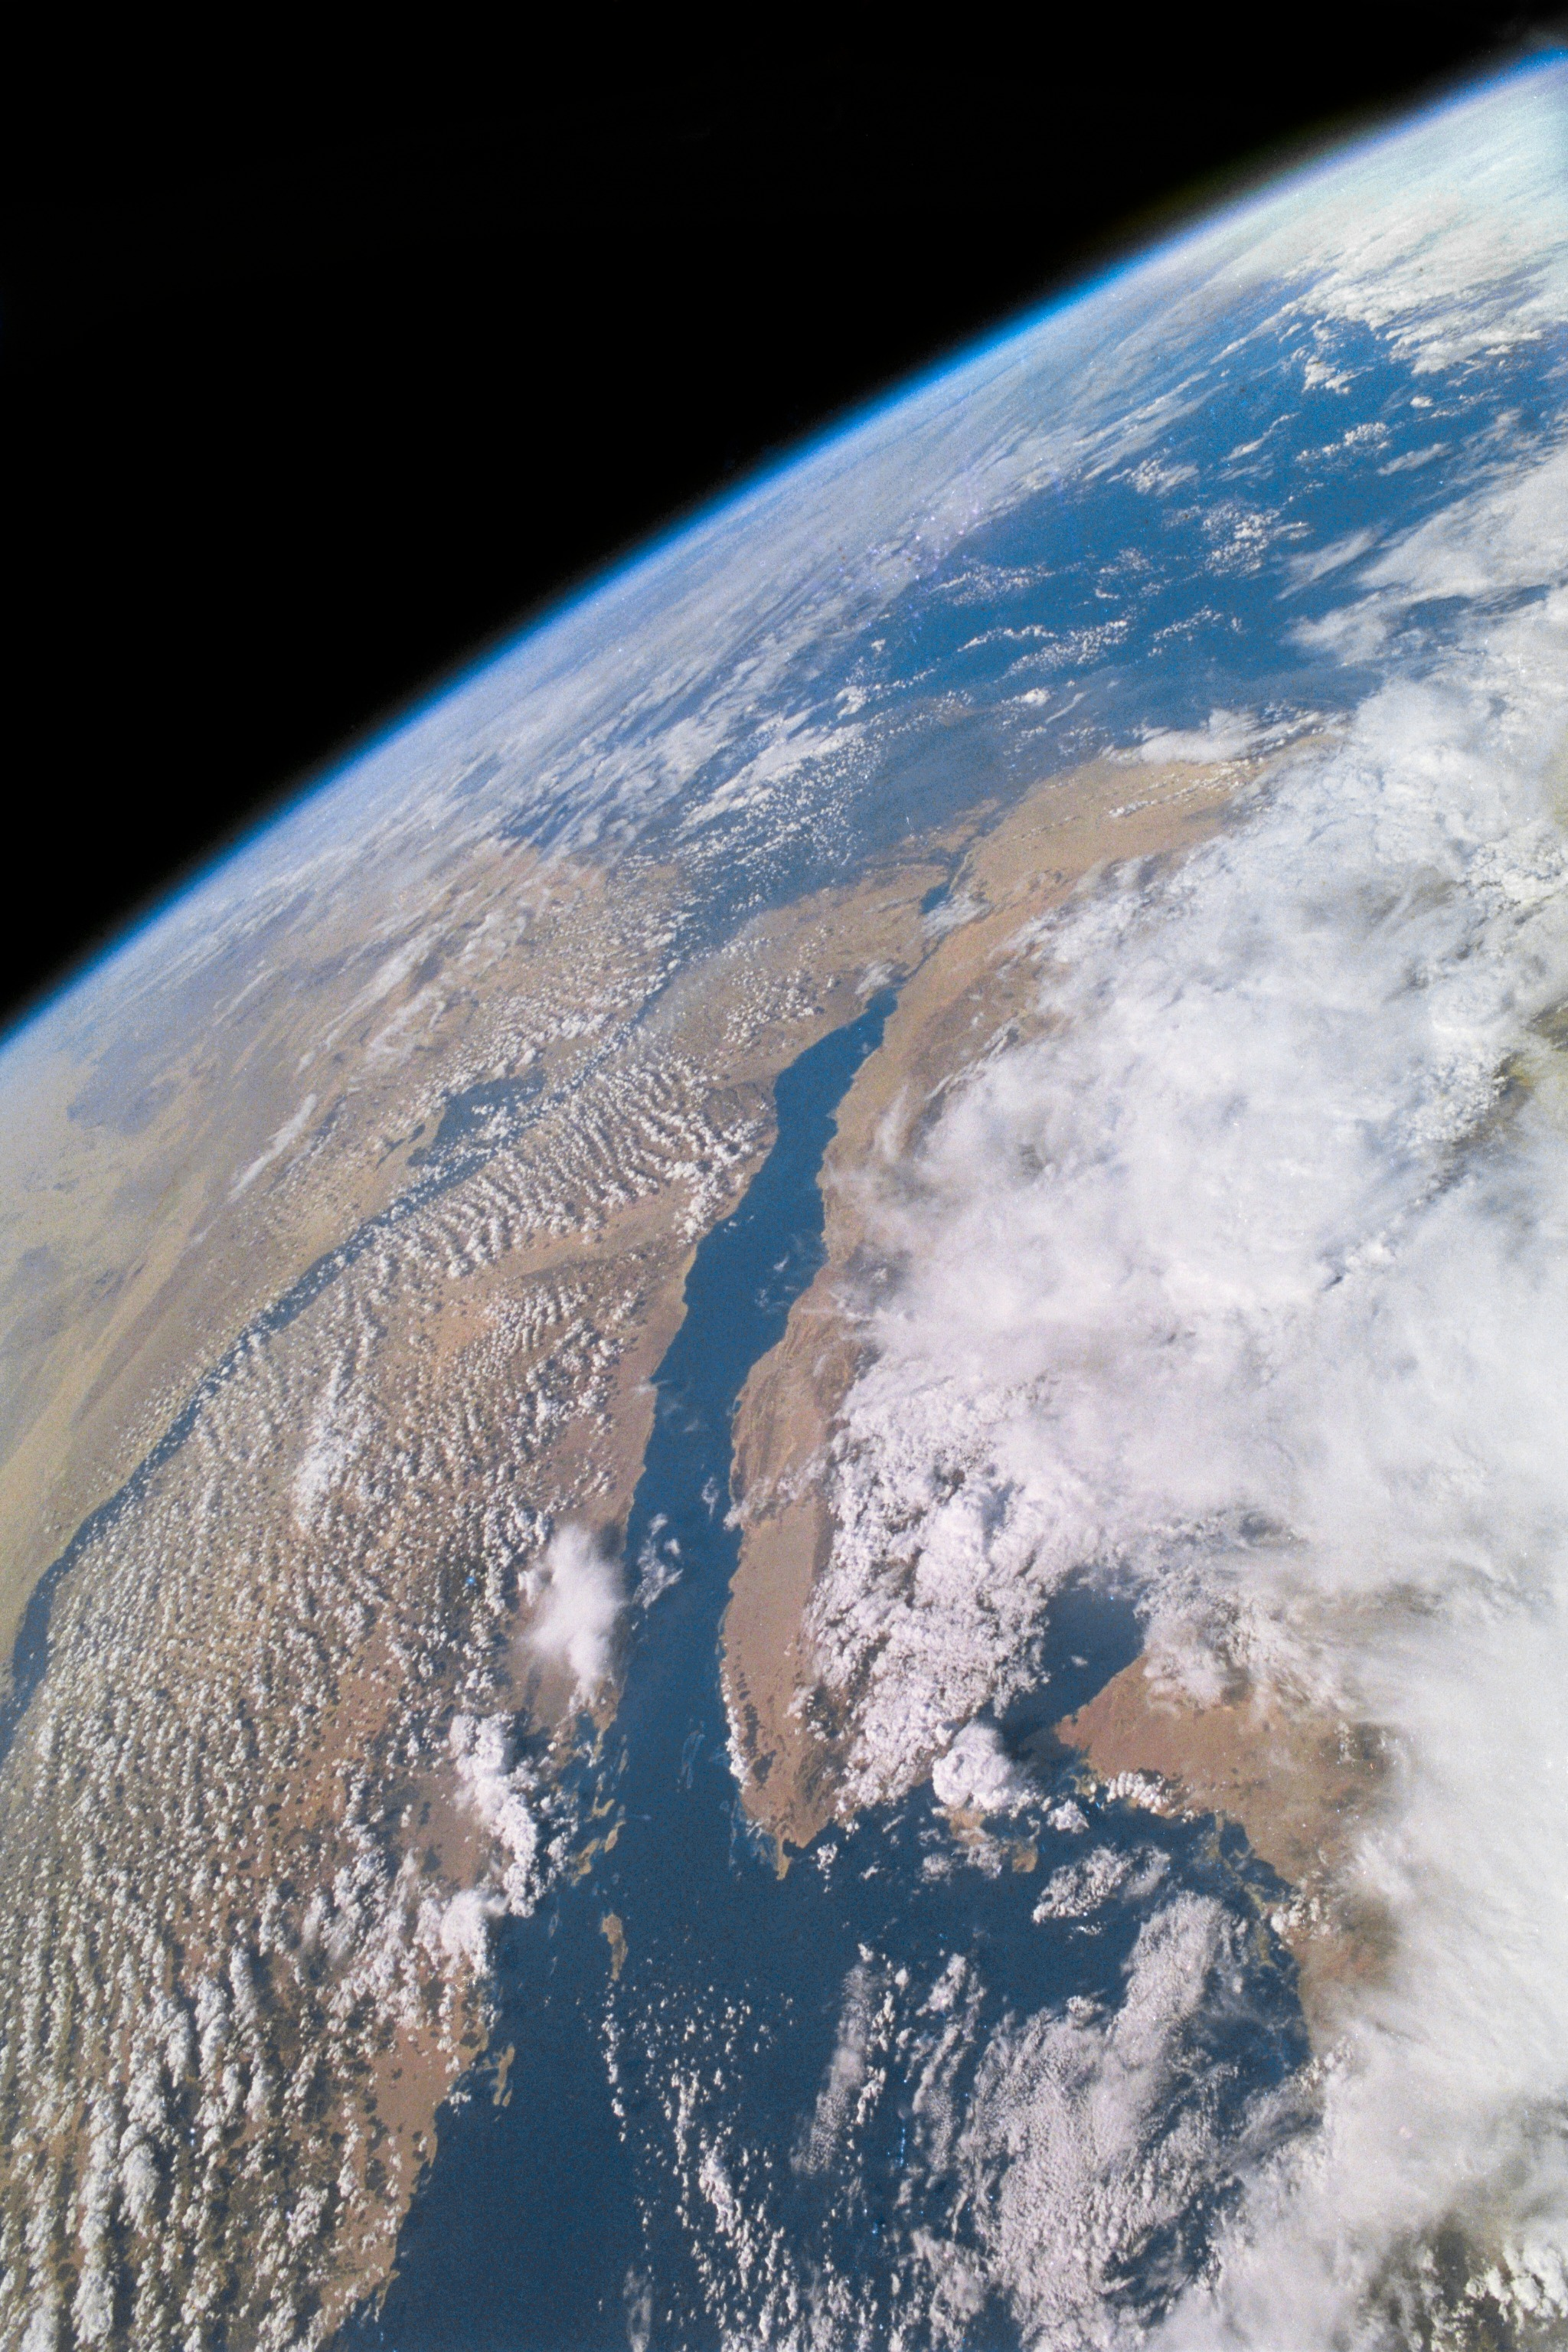 Earthview of Sinai Peninsula